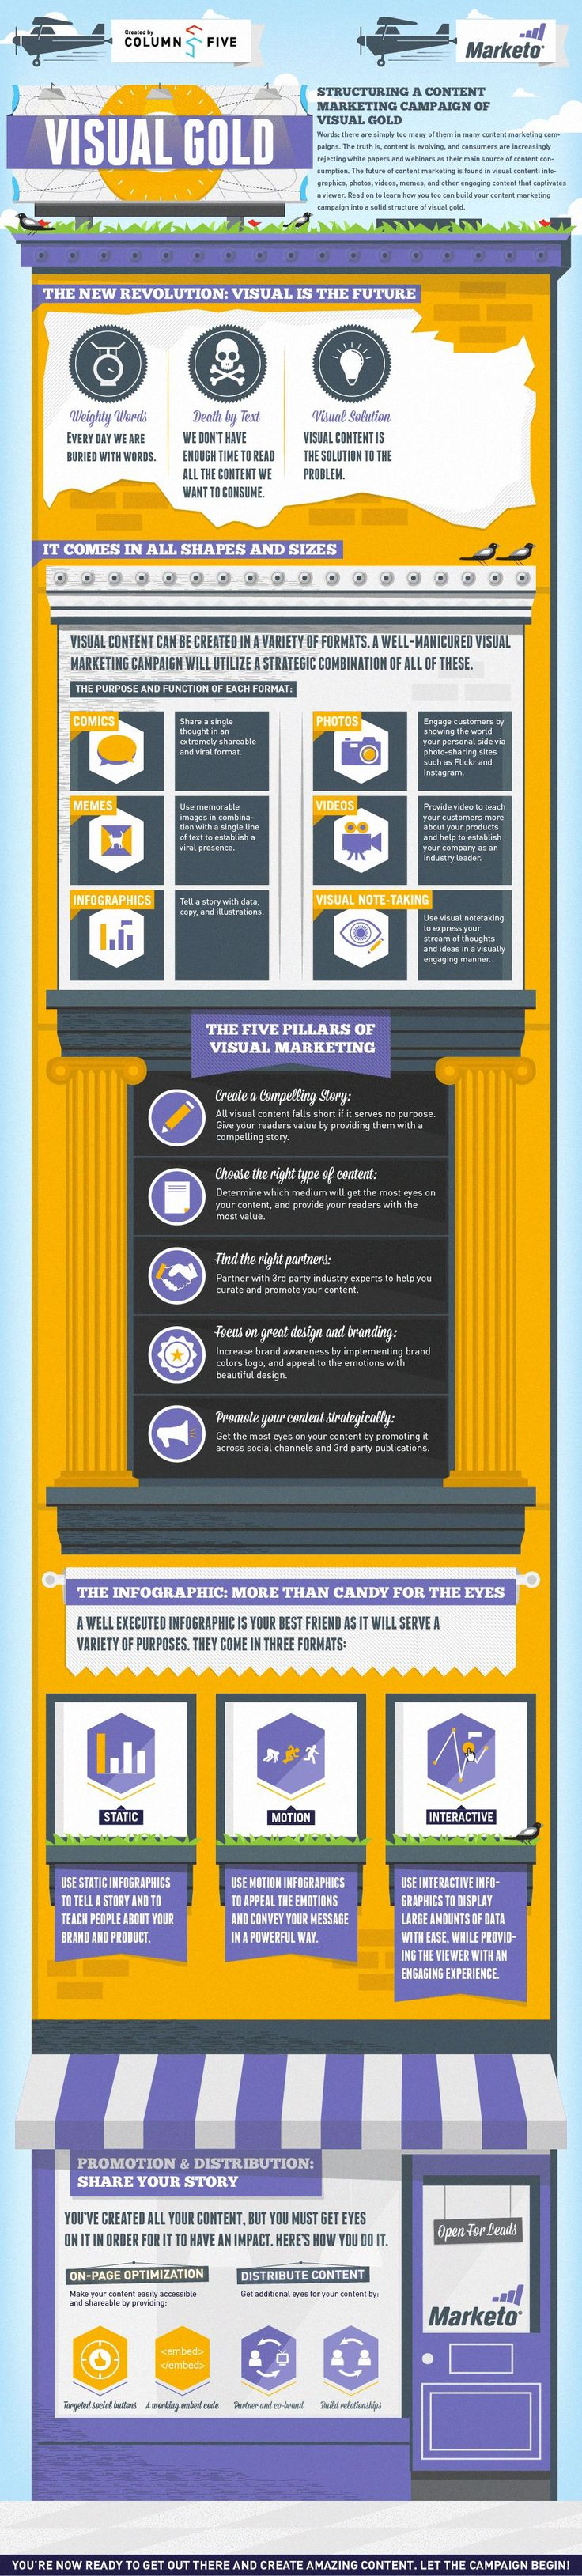 The Five Pillars of Visual Marketing [Infographic]